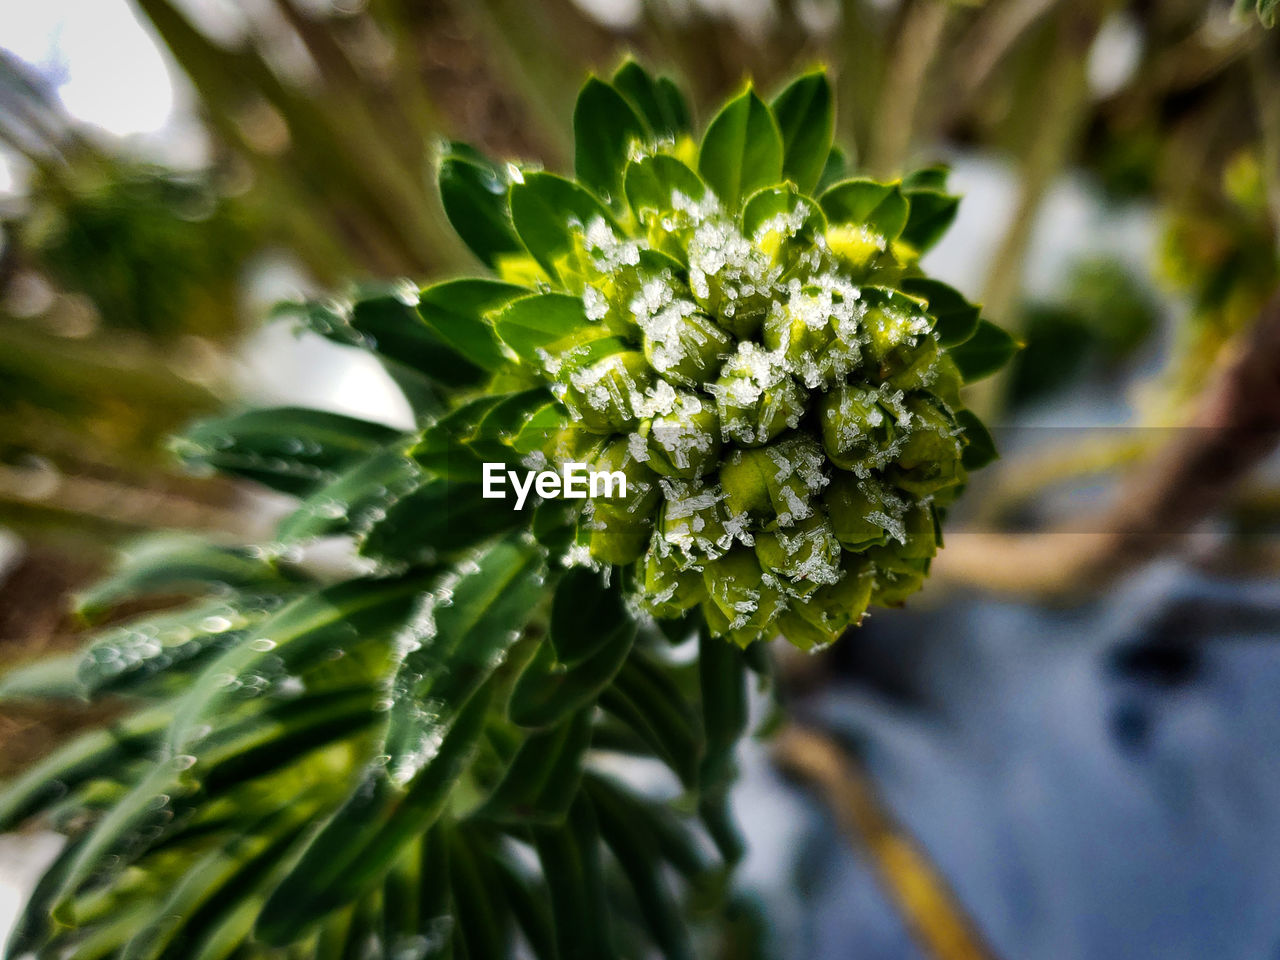 plant, growth, beauty in nature, close-up, flower, green color, focus on foreground, nature, flowering plant, day, no people, fragility, freshness, selective focus, vulnerability, leaf, plant part, outdoors, flower head, inflorescence